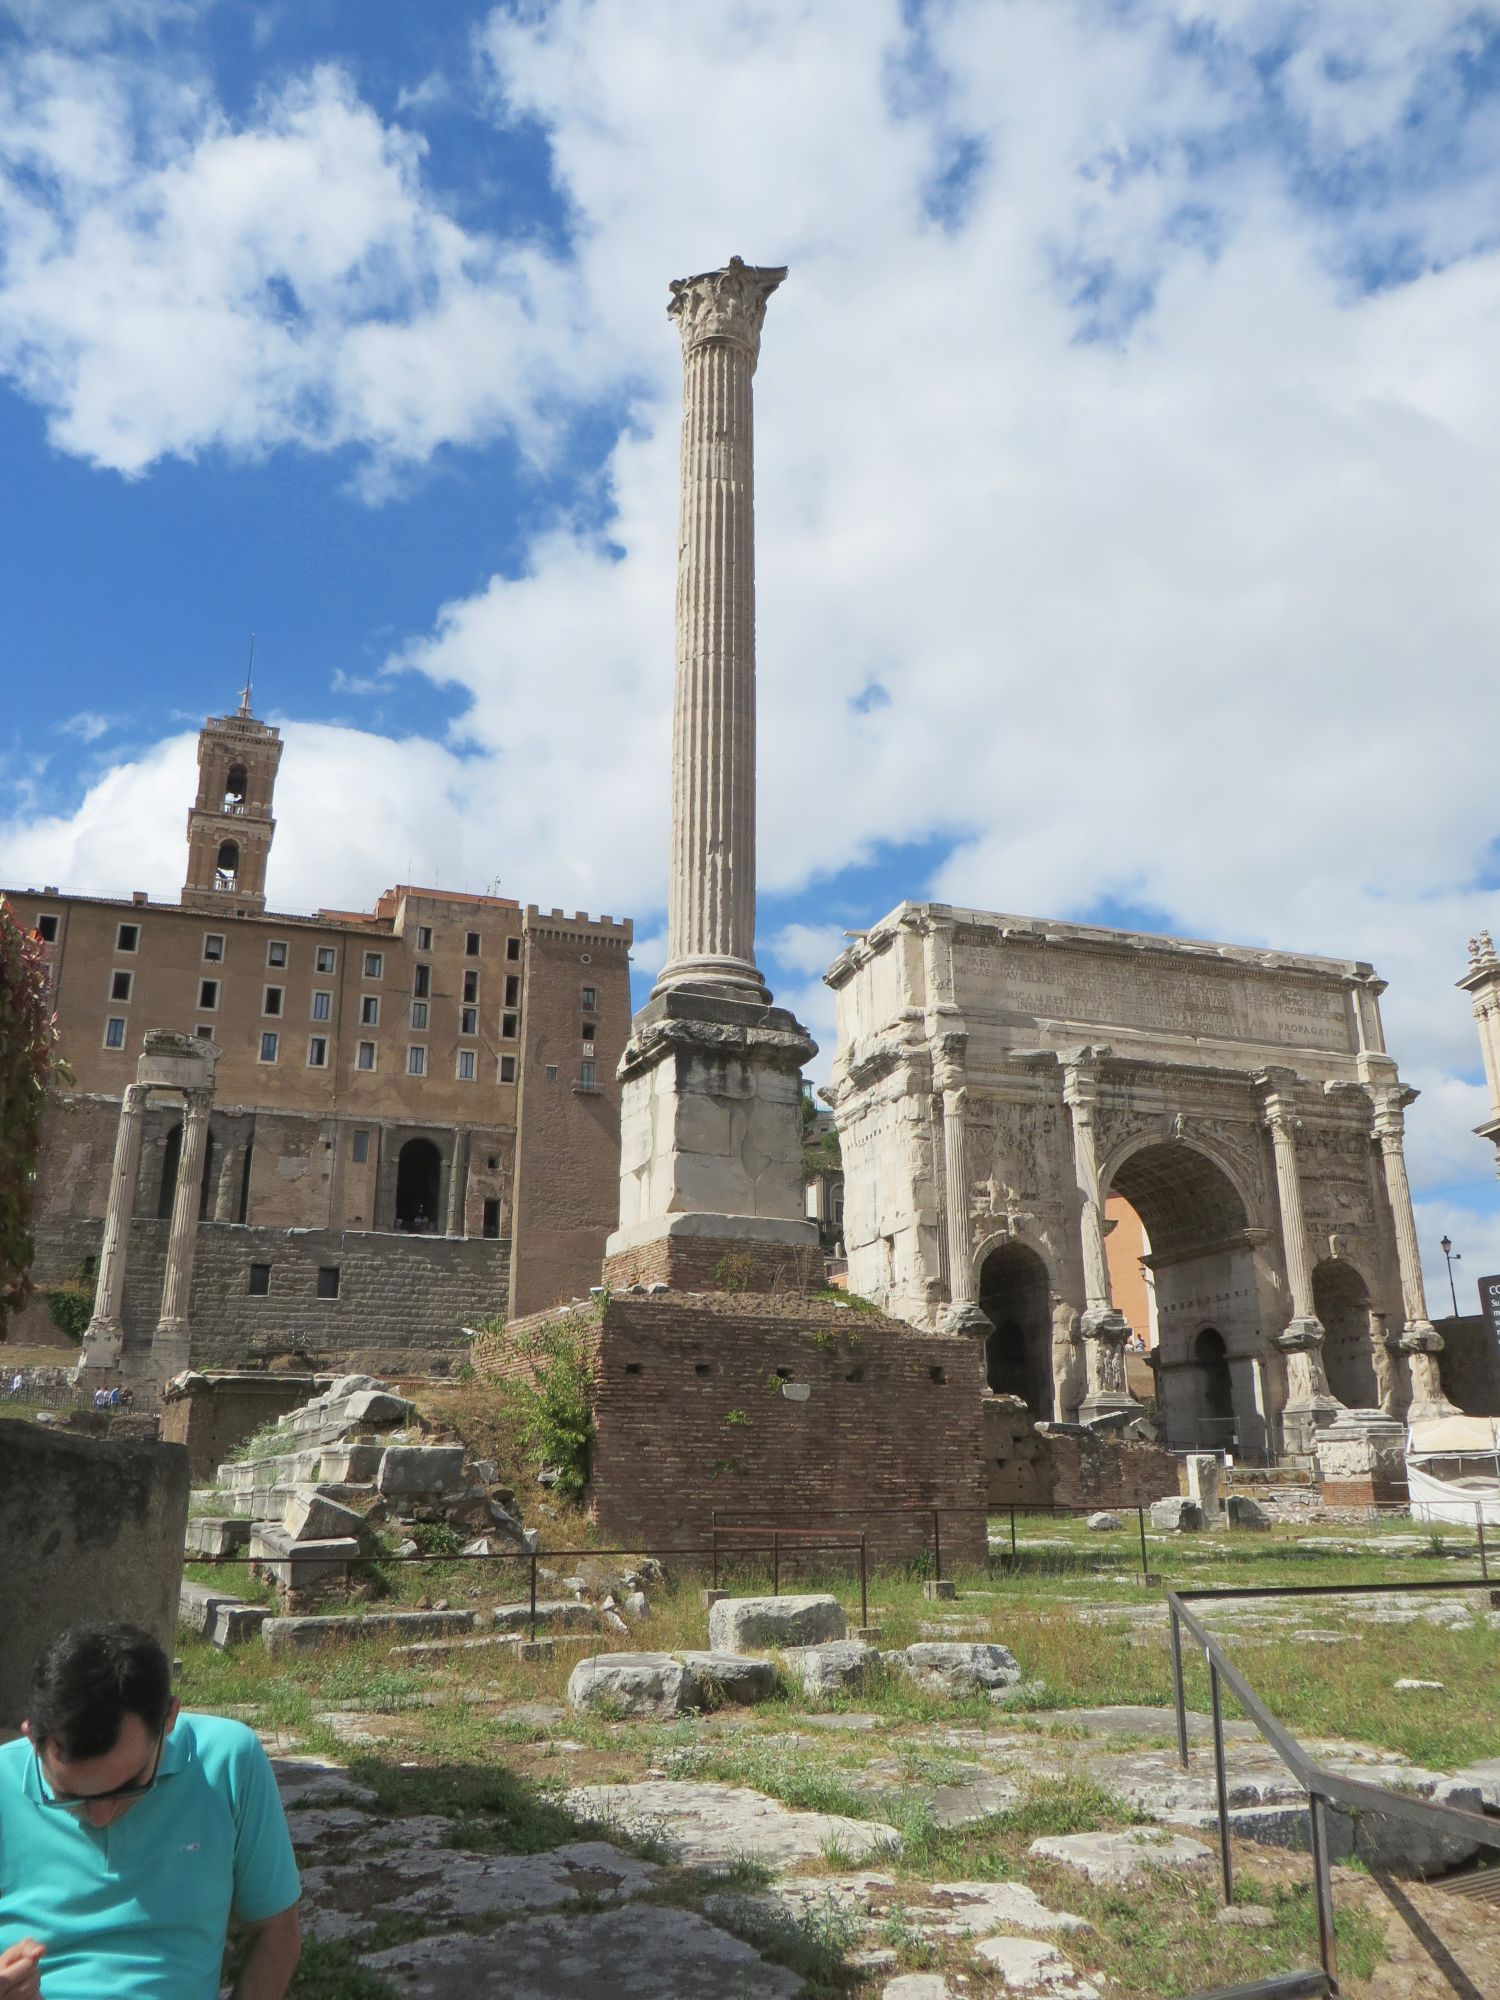 The Column of Phocas in the Foro Romano